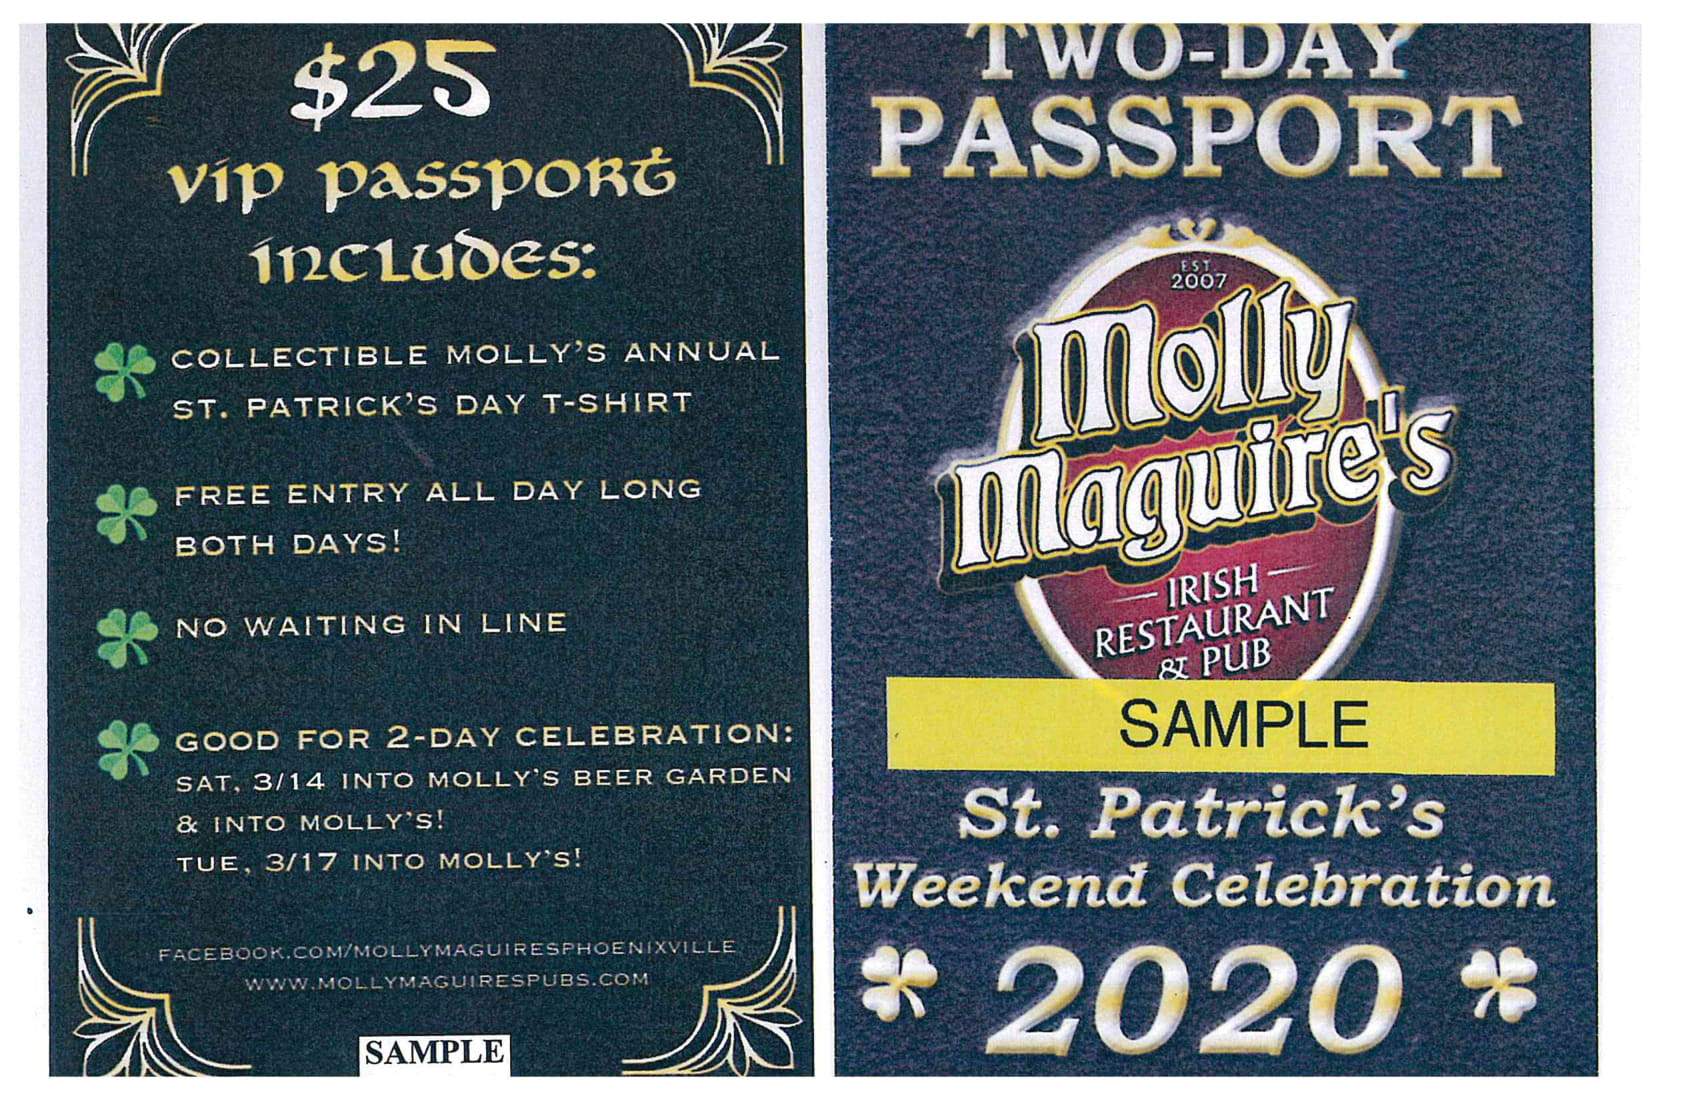 $25 VIP passport includes: Collectable molly's annual st. patrick's day shirt, free entry all day long both days, no waiting in line, good for 2-day celebration: Sat 3/14 into Molly's beer garden and into molly's! Tue, 3/17 into molly's!. Two-day passport- St. patrick's weekend celebration 2020.